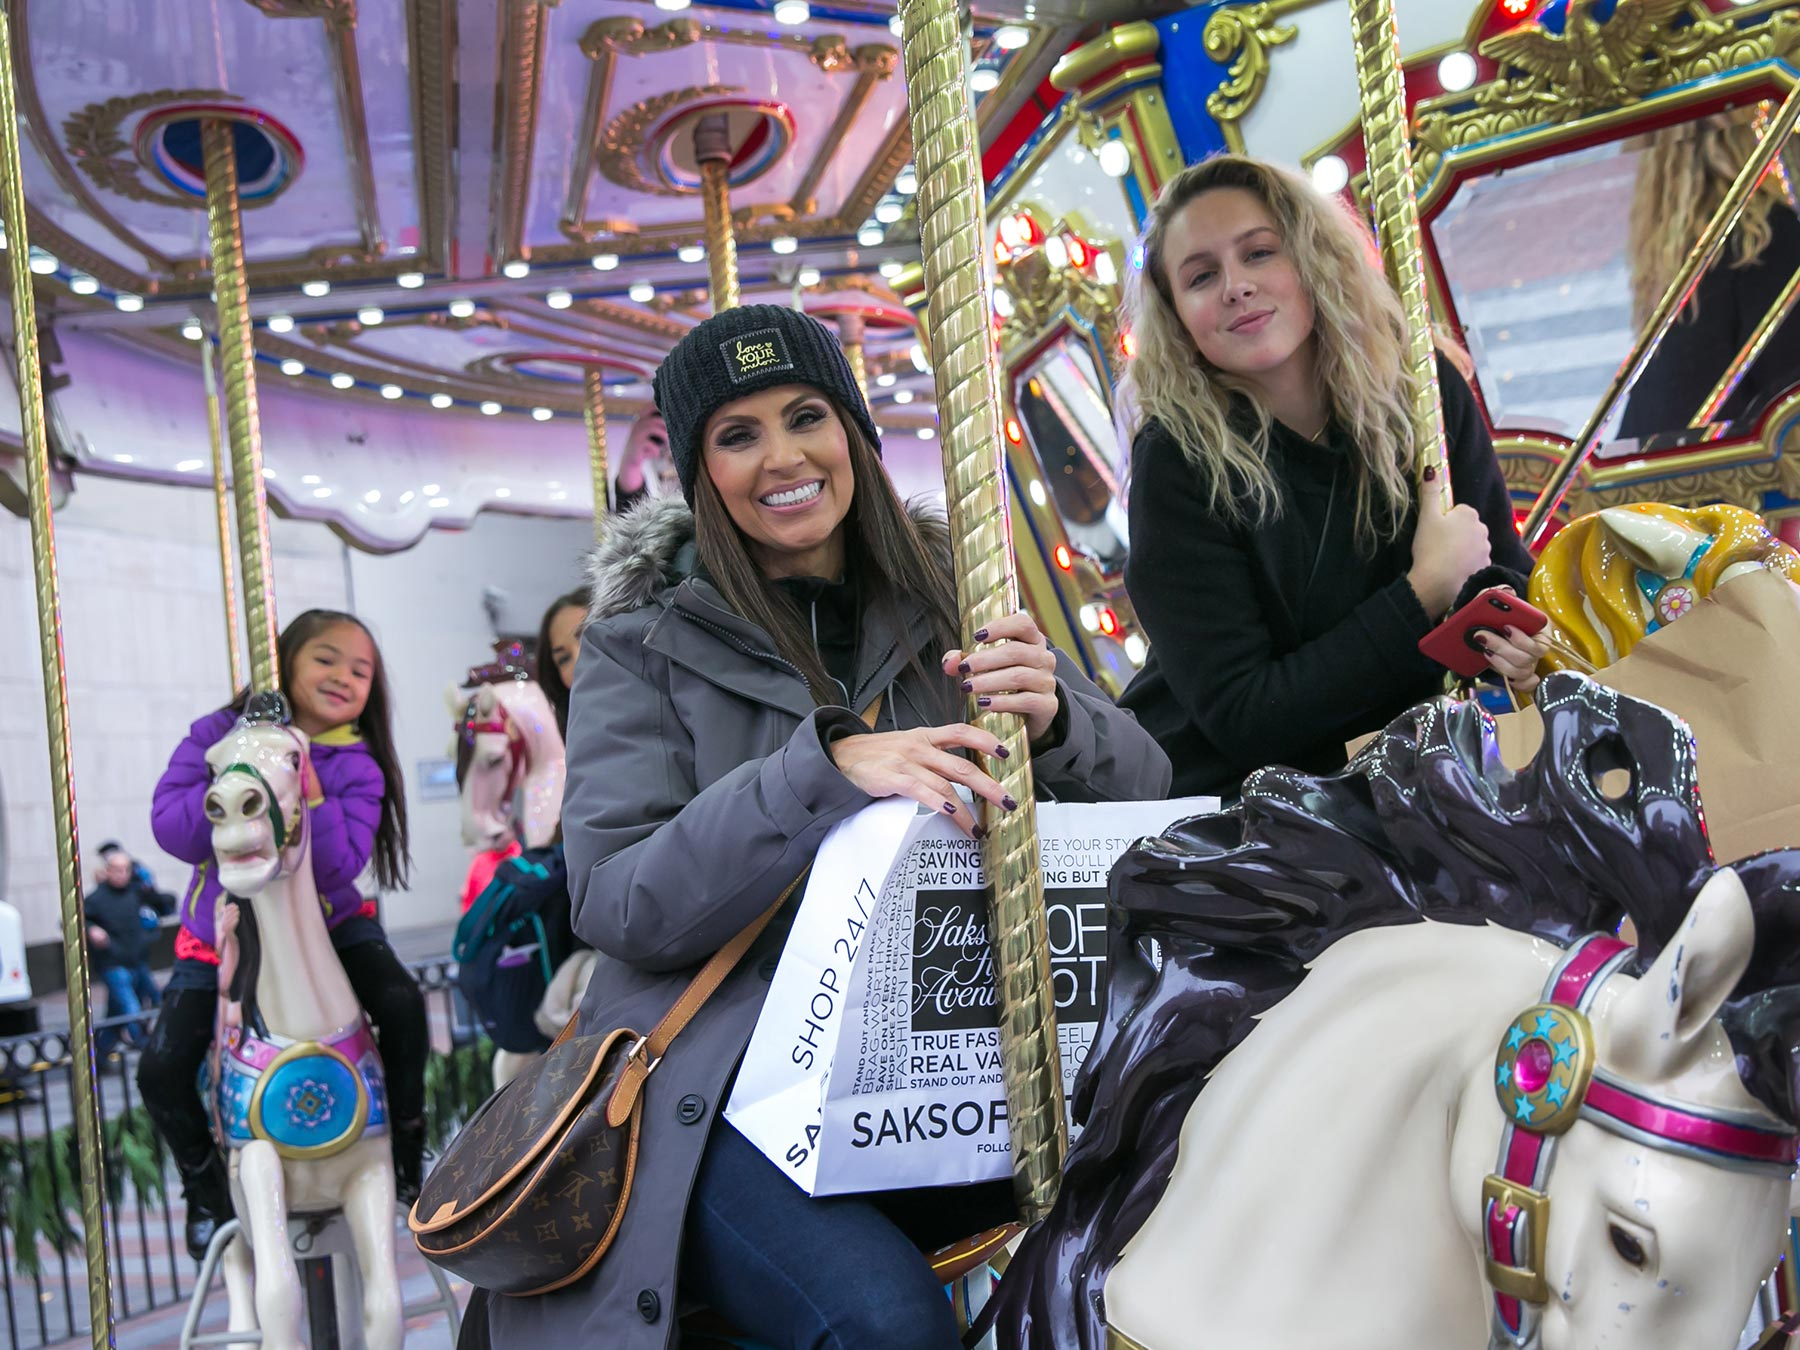 Carousel riders in downtown Seattle